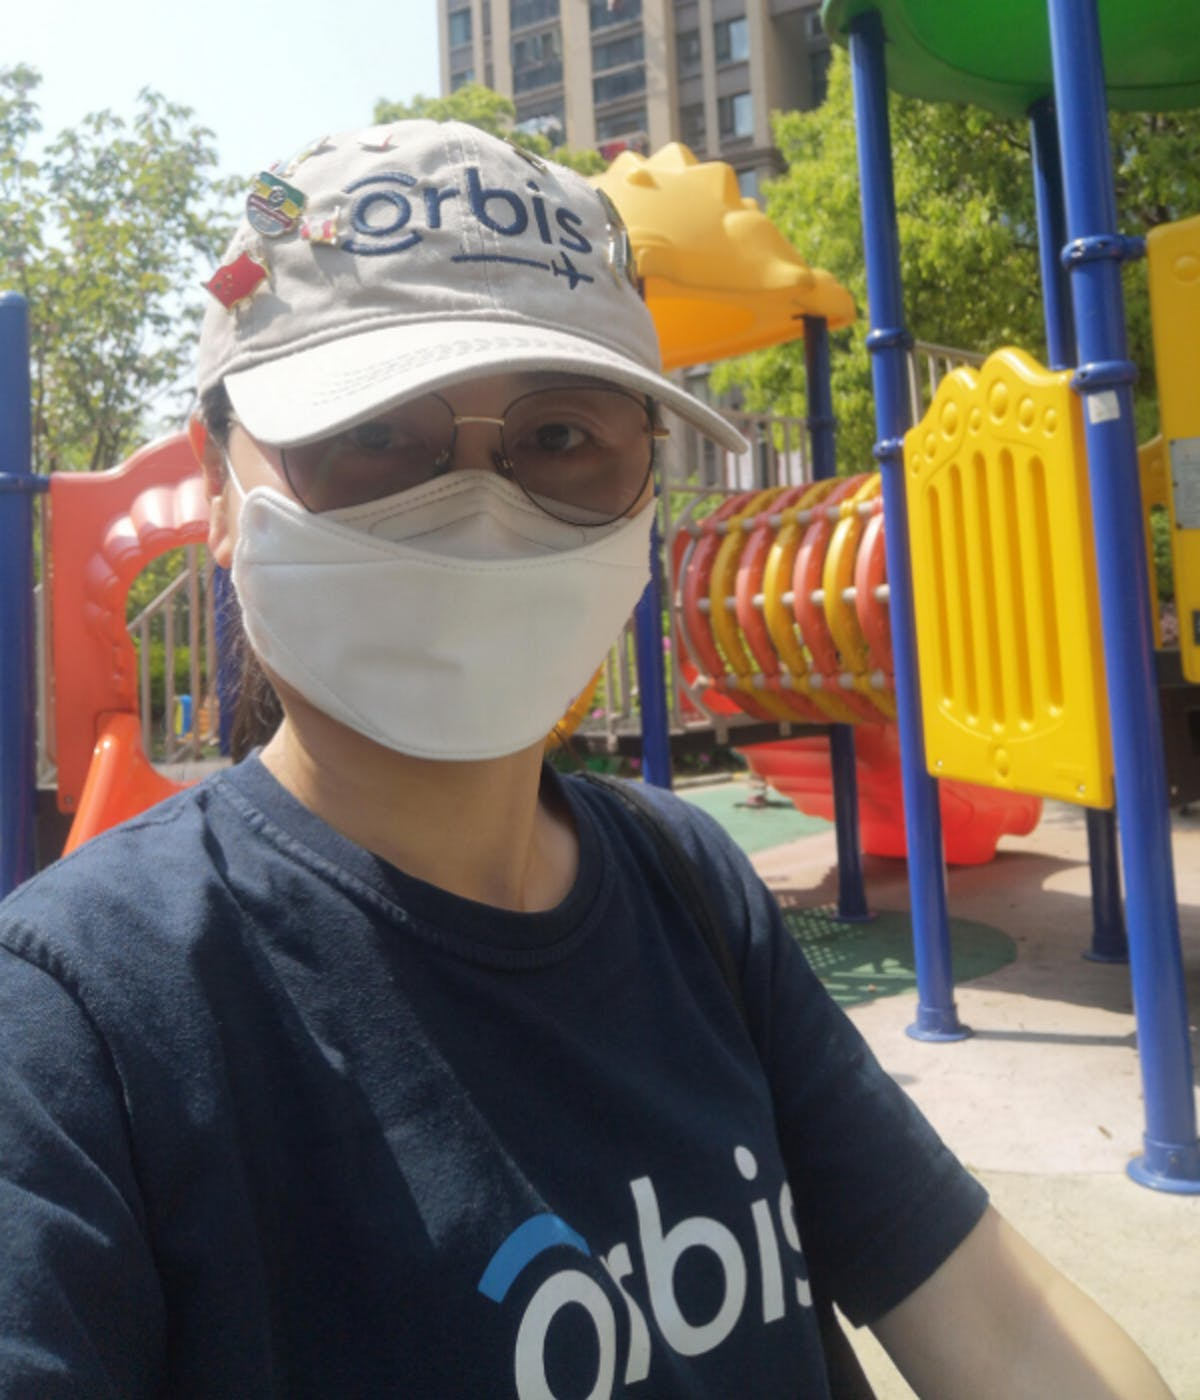 Orbis Nurse Xiao Ying Liu wearing a protective mask in Wuhan, China amid Covid_19 global outbreak